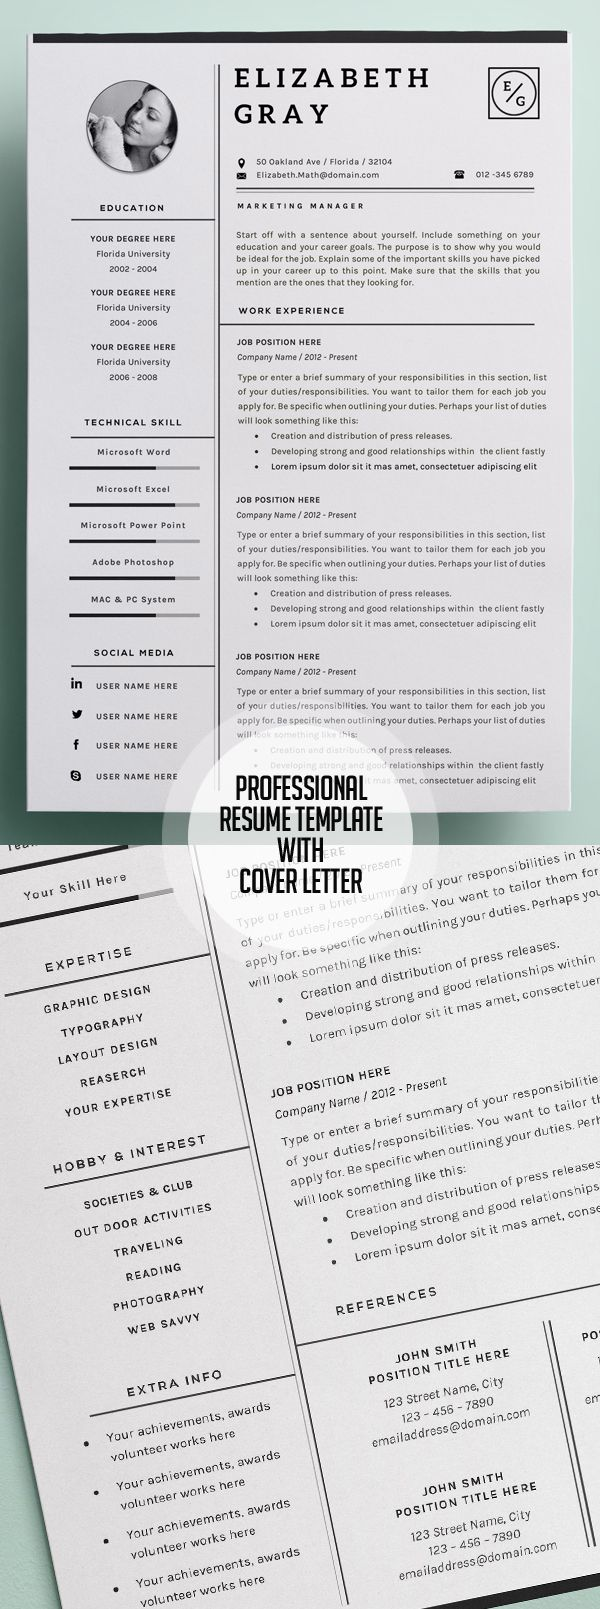 Picnictoimpeachus  Mesmerizing  Resume Ideas On Pinterest  Resume Resume Templates And  With Gorgeous Professional And Modern Resume Template With Page Cover Cvtemplate With Easy On The Eye Resume Template For Internship Also Professional Association Of Resume Writers And Career Coaches In Addition Hostess Resume Sample And Resume For Maintenance Worker As Well As Housekeeping Manager Resume Additionally Disney Resume From Pinterestcom With Picnictoimpeachus  Gorgeous  Resume Ideas On Pinterest  Resume Resume Templates And  With Easy On The Eye Professional And Modern Resume Template With Page Cover Cvtemplate And Mesmerizing Resume Template For Internship Also Professional Association Of Resume Writers And Career Coaches In Addition Hostess Resume Sample From Pinterestcom